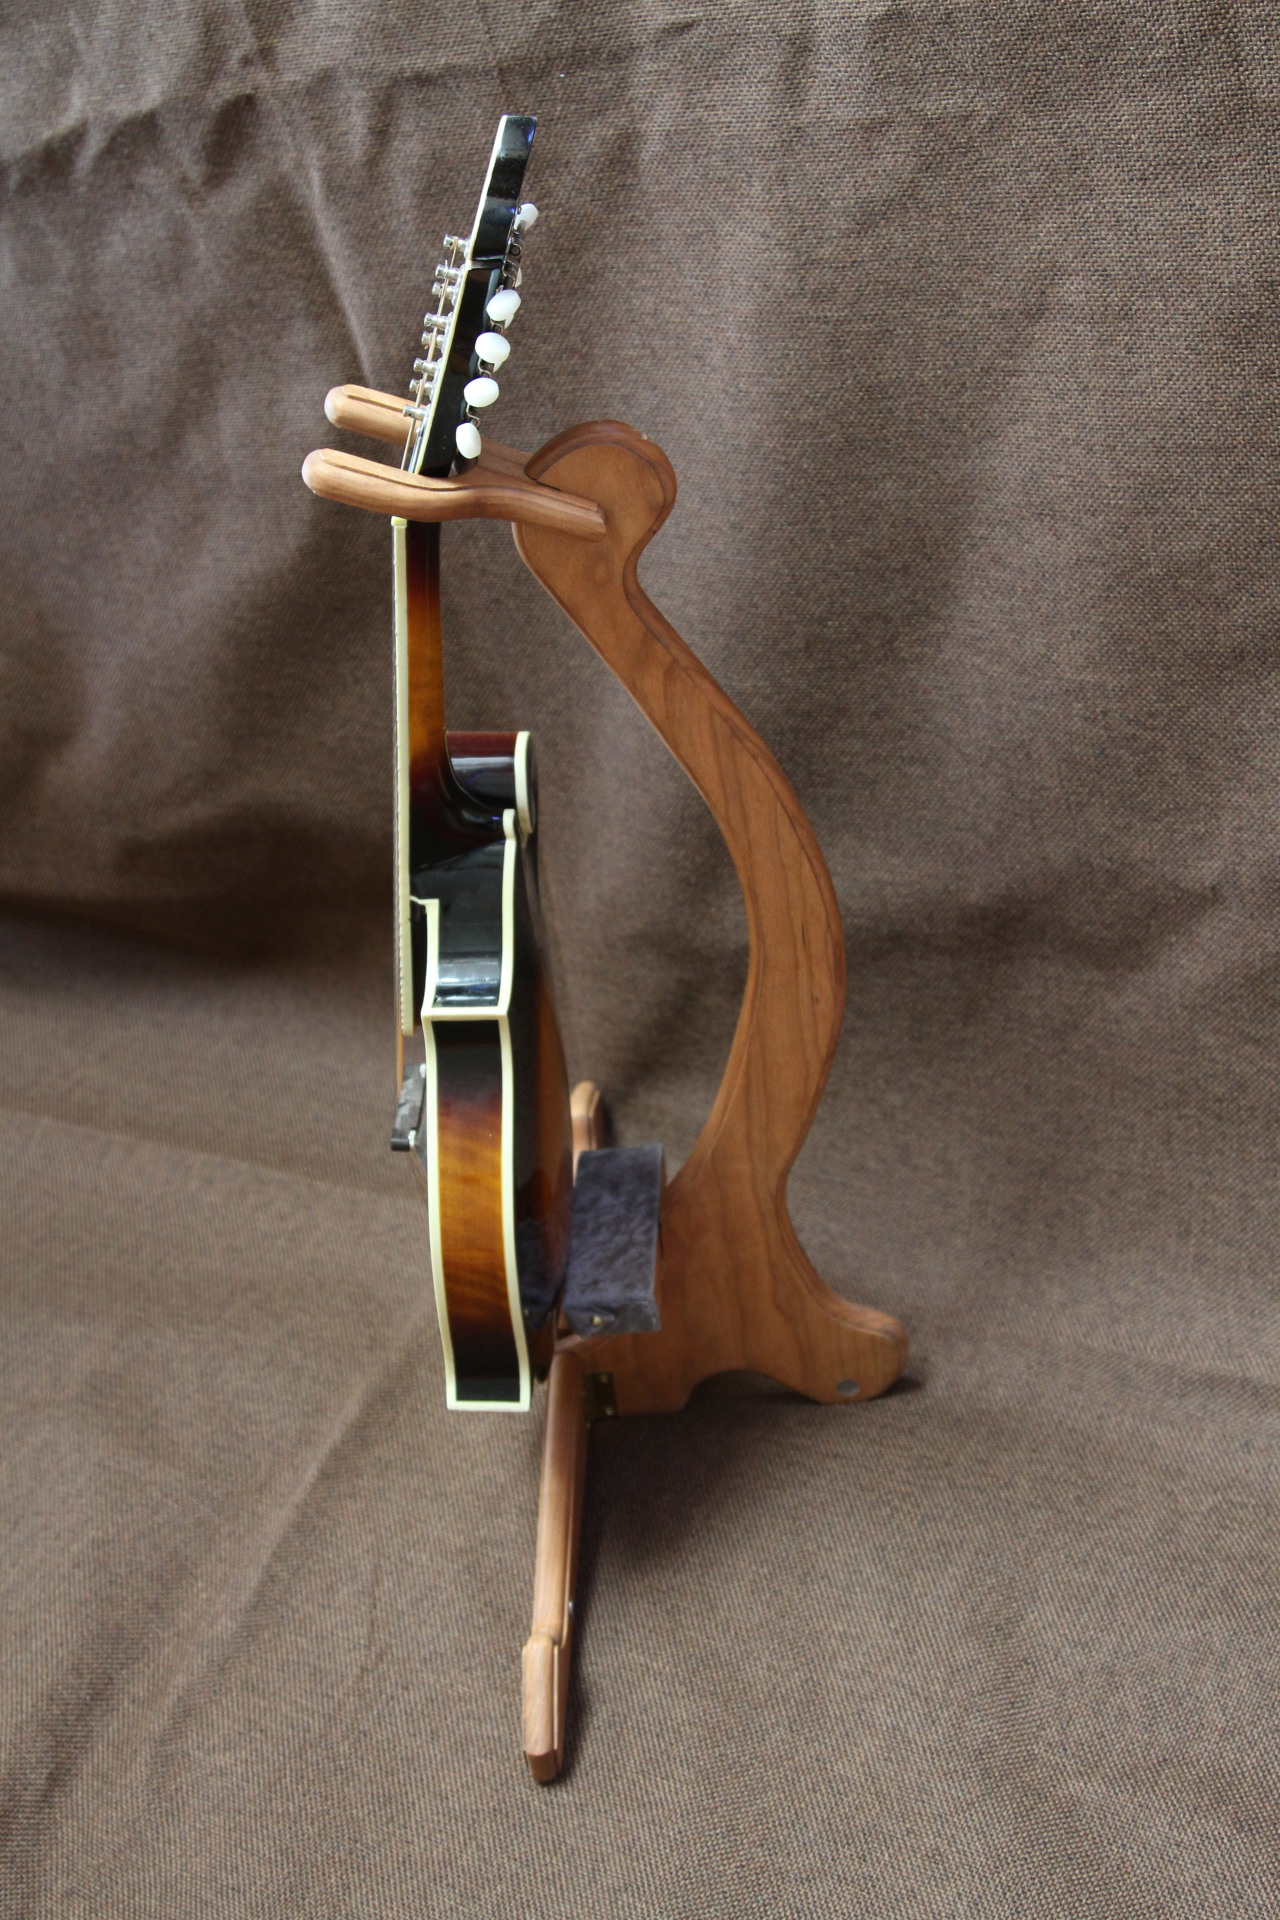 Original cherry instrument stand, small size, side view with mandolin